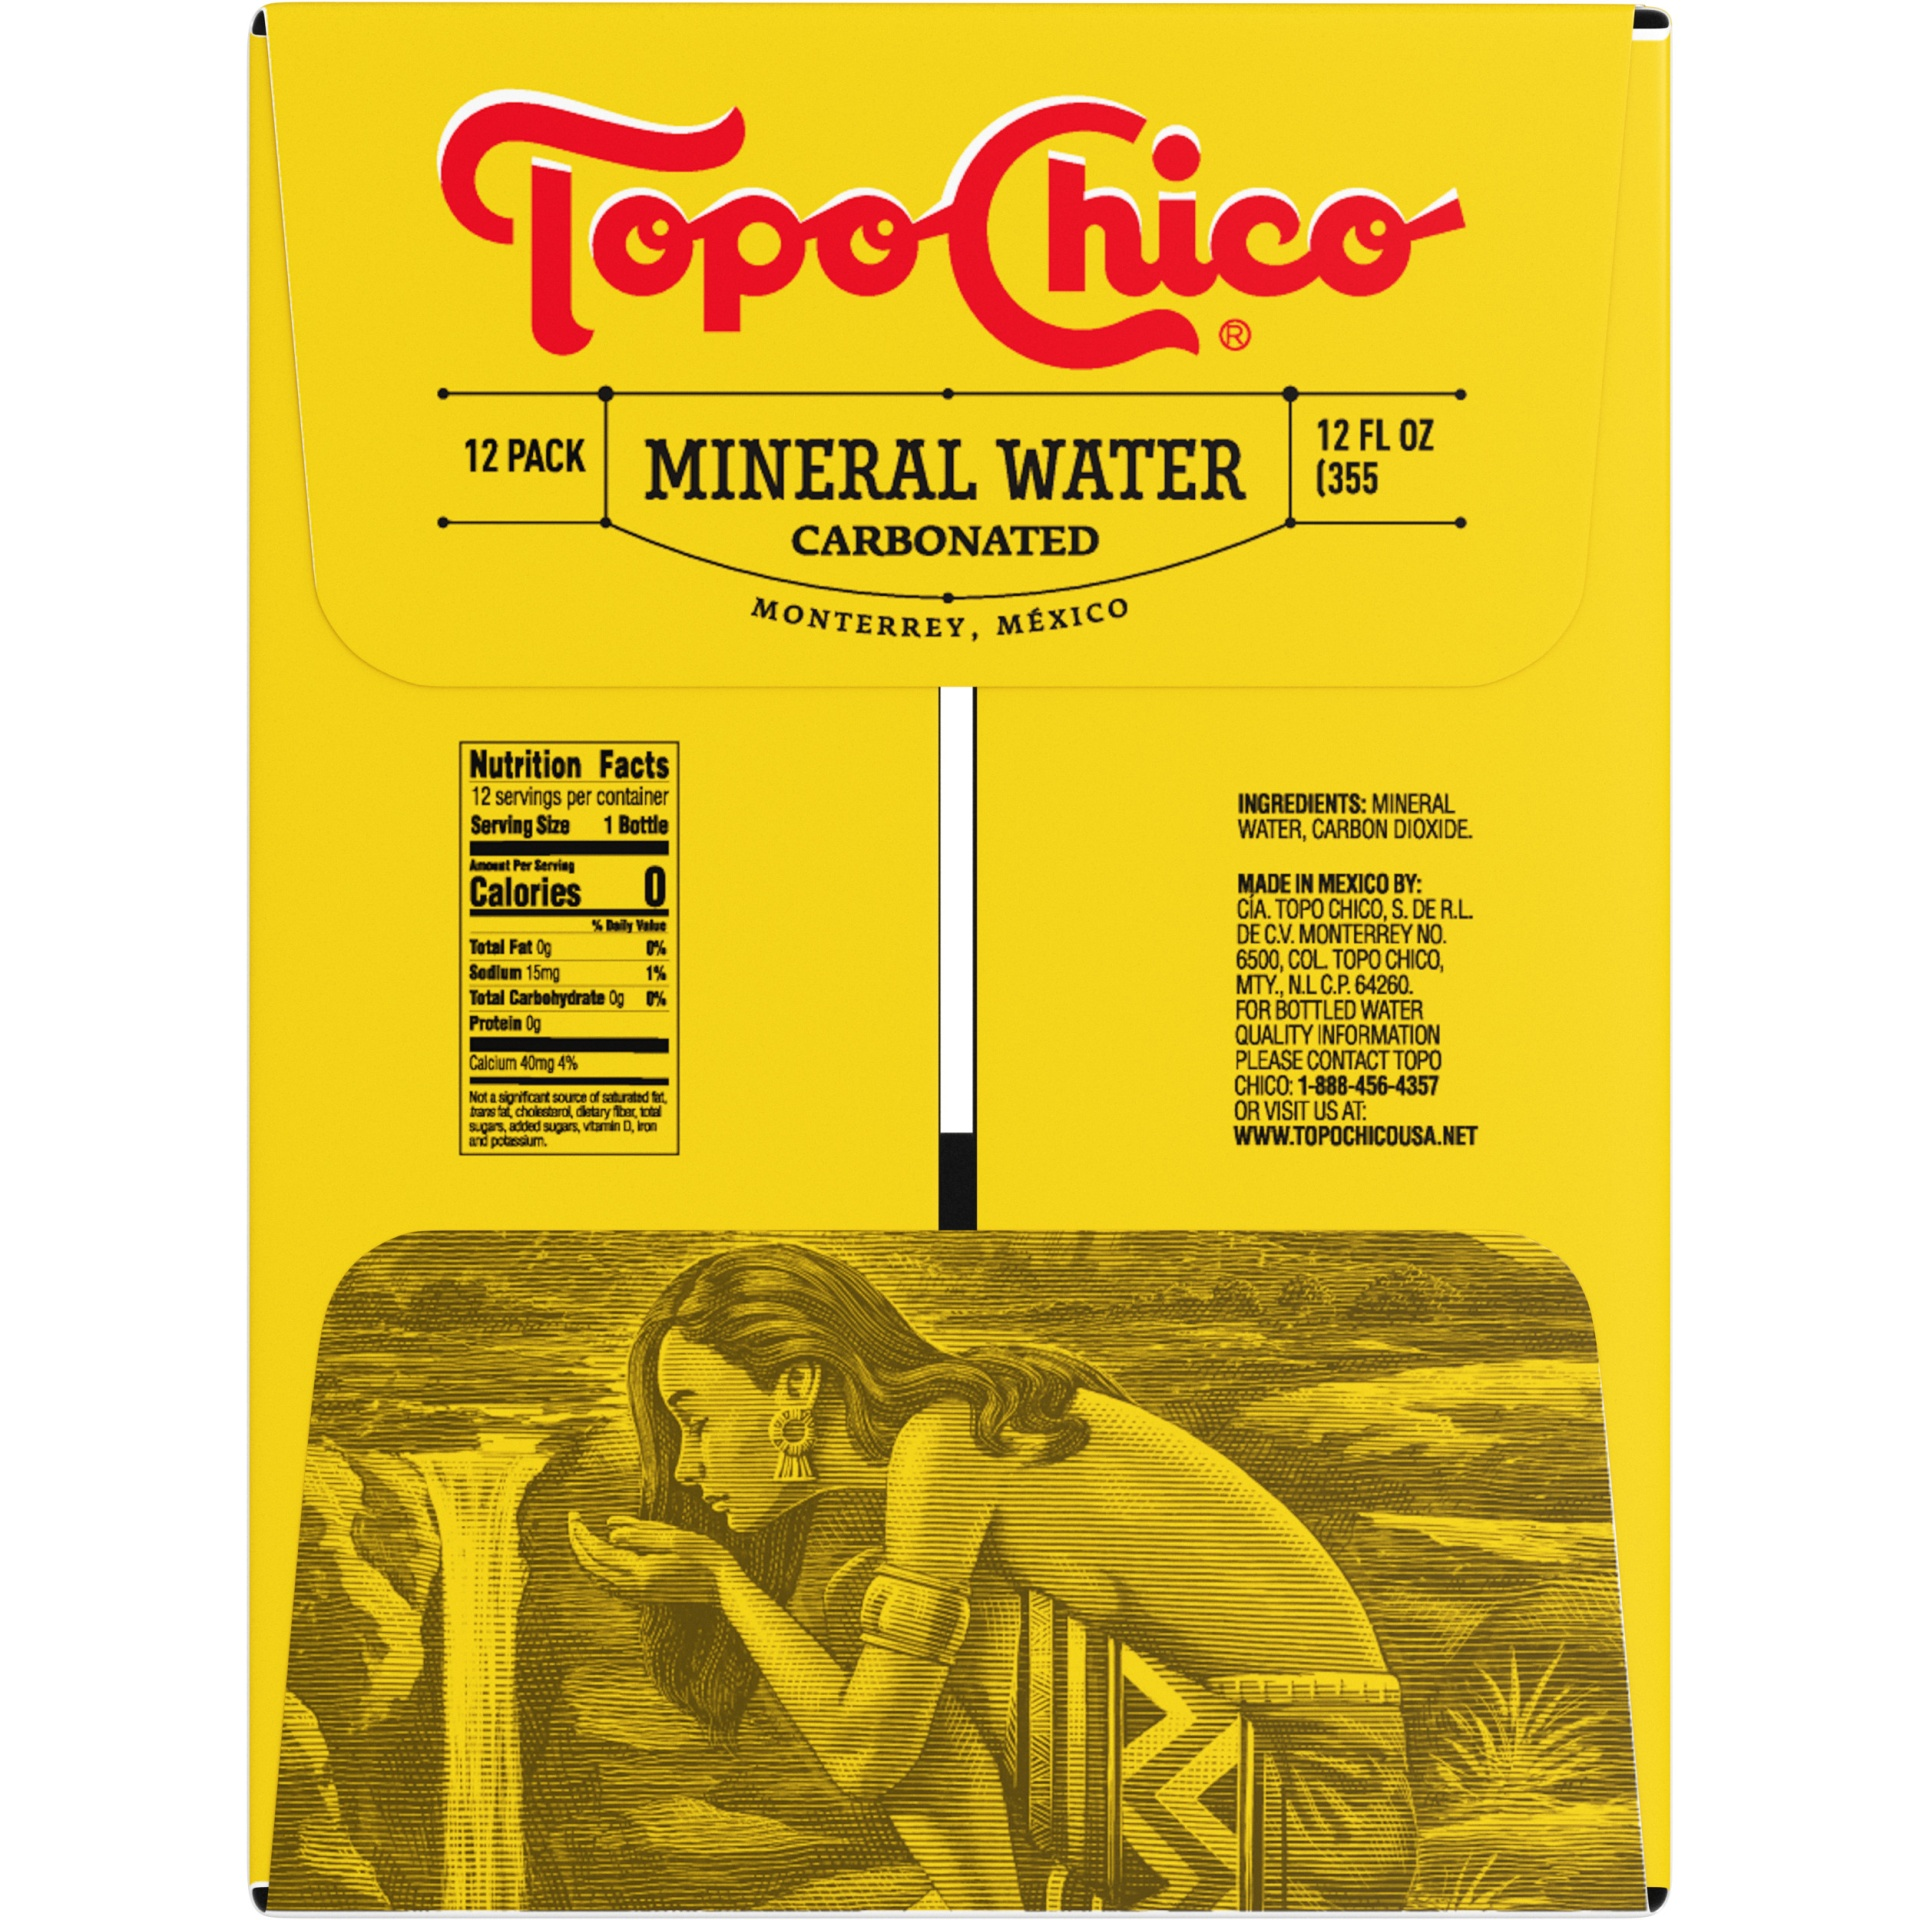 slide 4 of 7, Topo Chico Mineral Water,